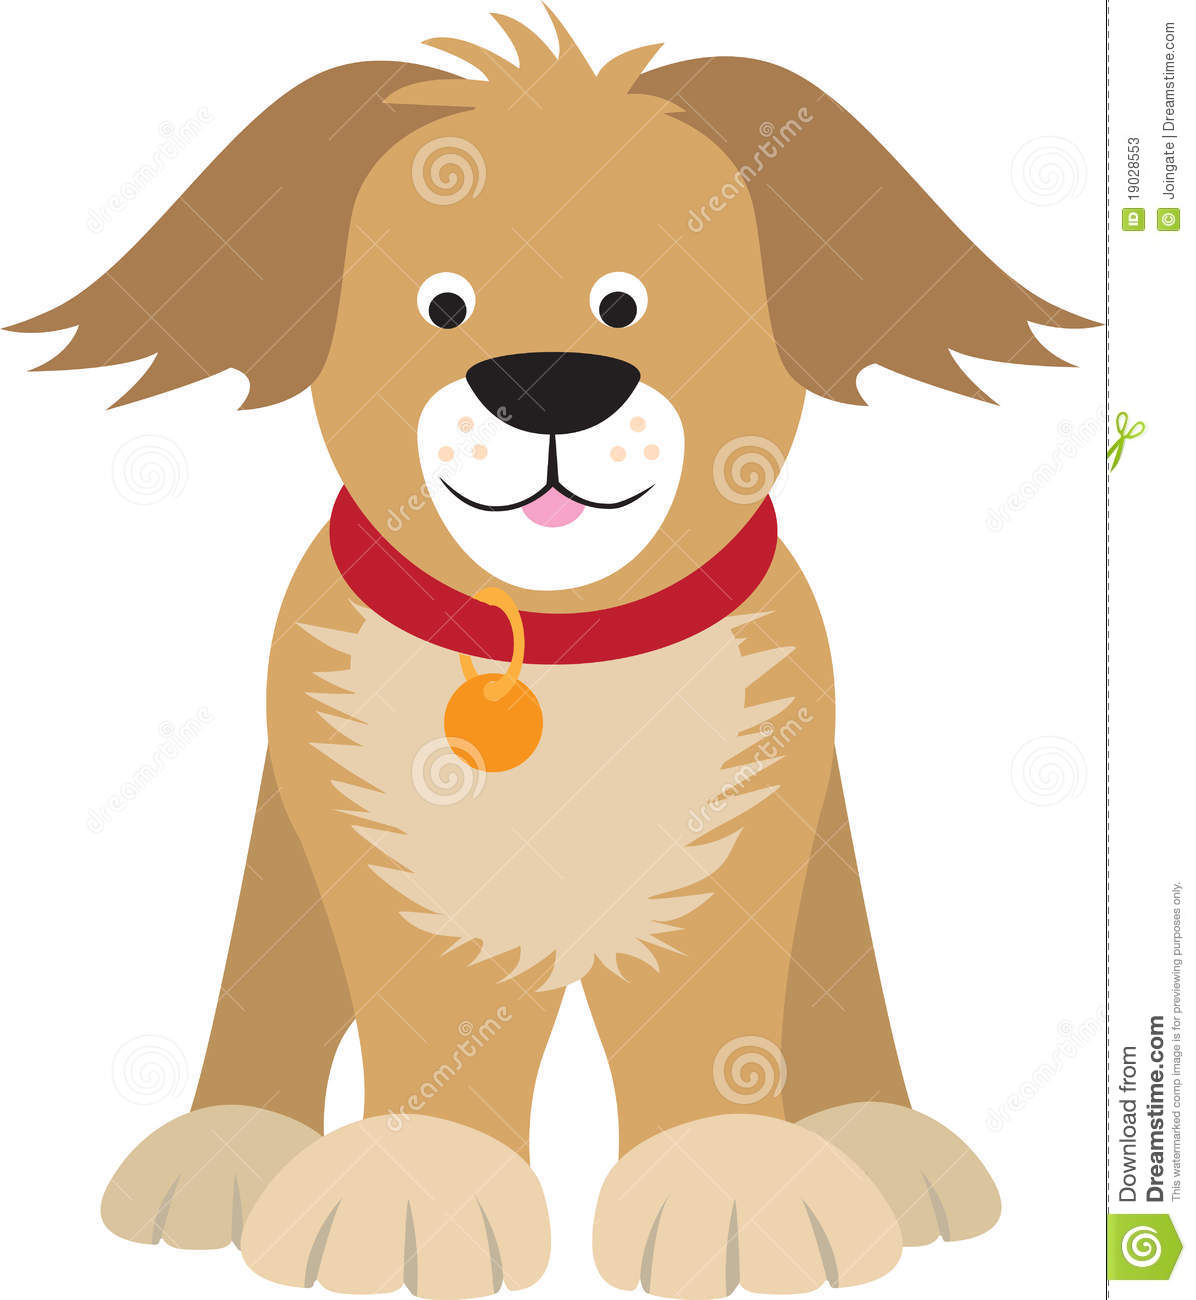 Dog Stock Photos , Images, & Pictures | Shutterstock